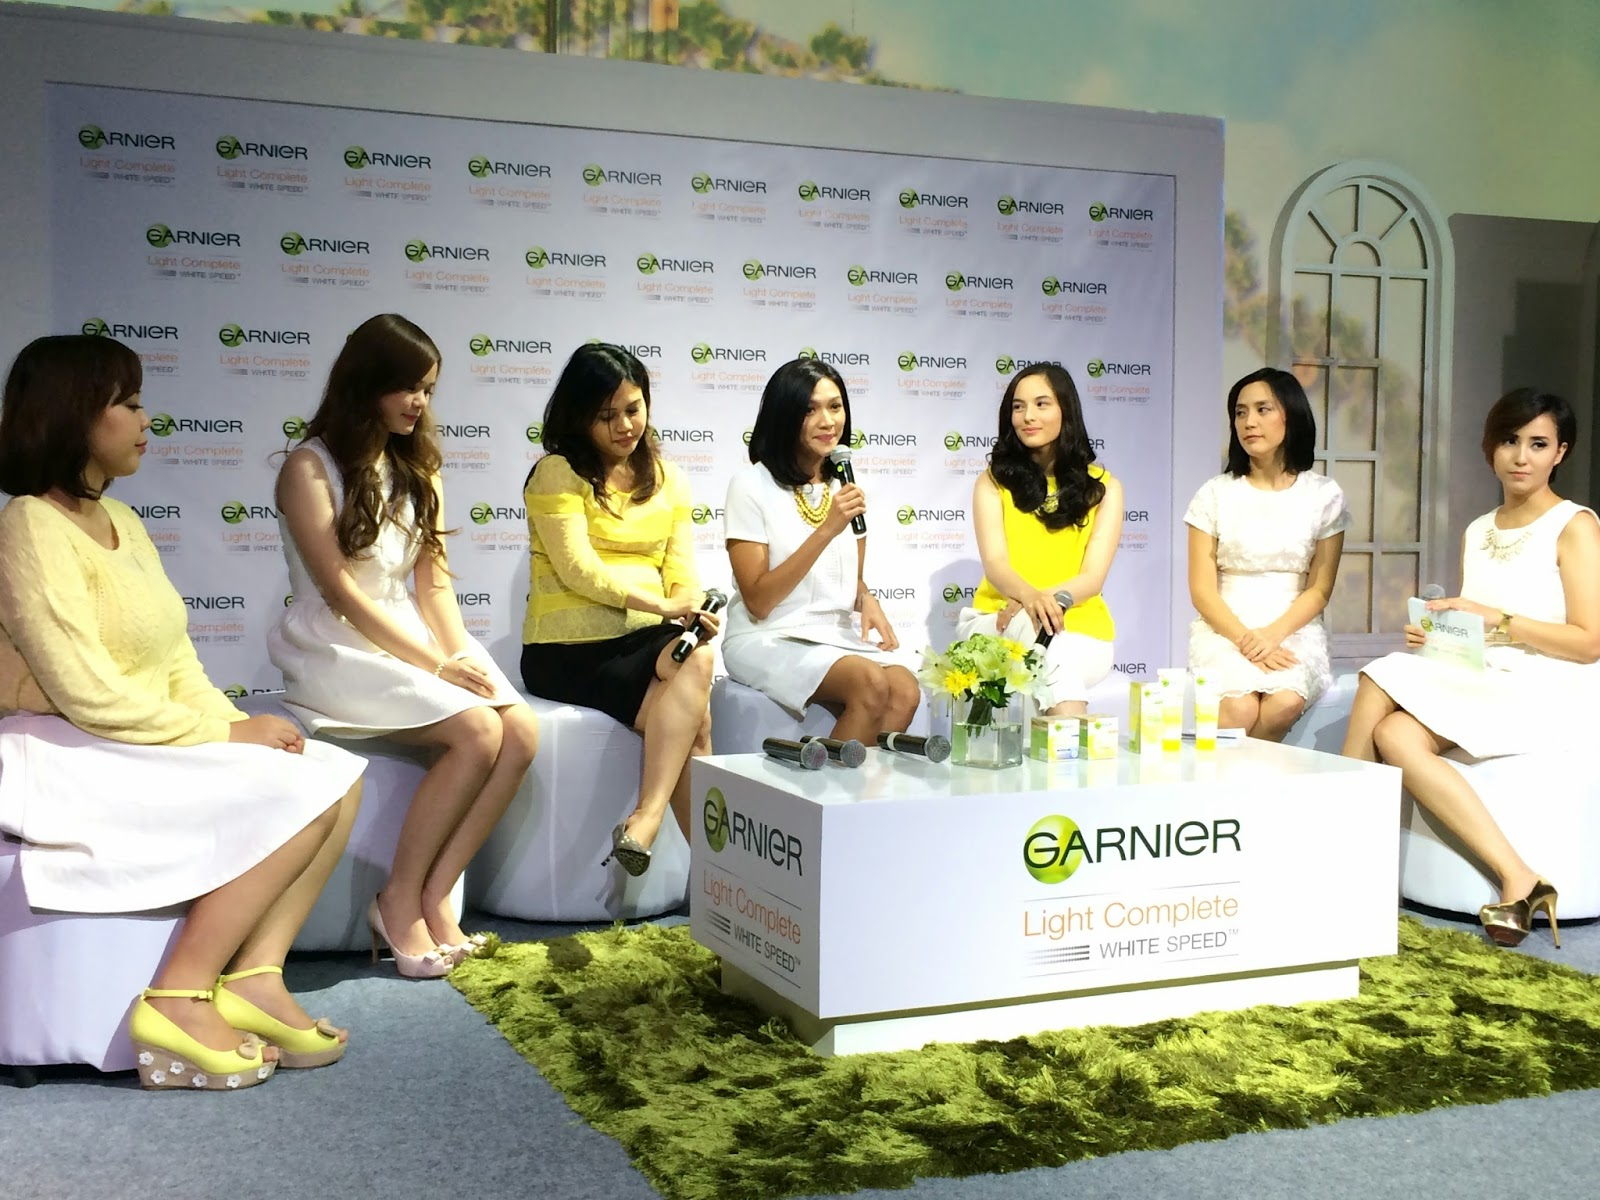 Garnier Light Complete White Speed Mia